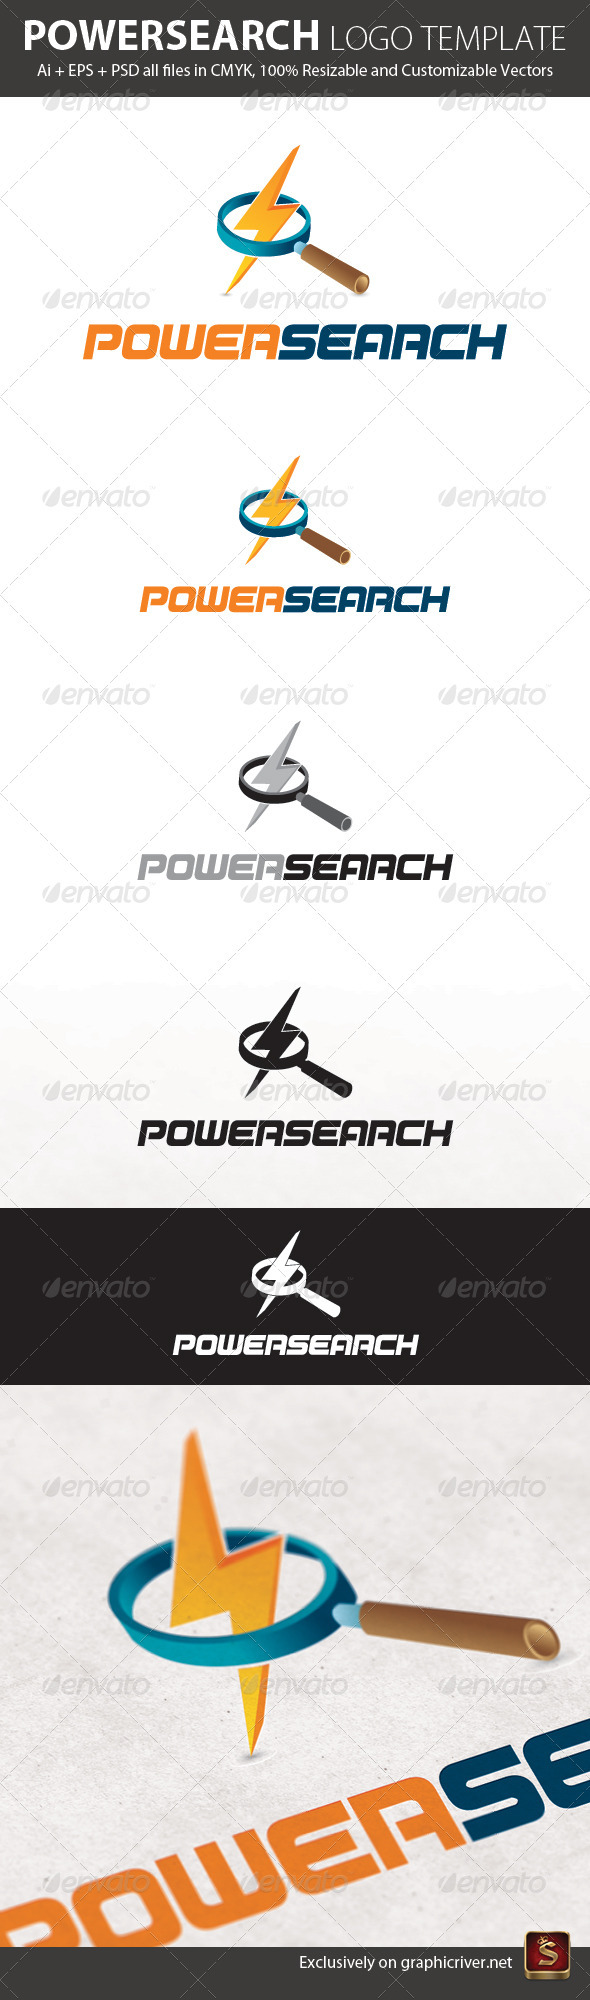 Powersearch Logo Template - Objects Logo Templates